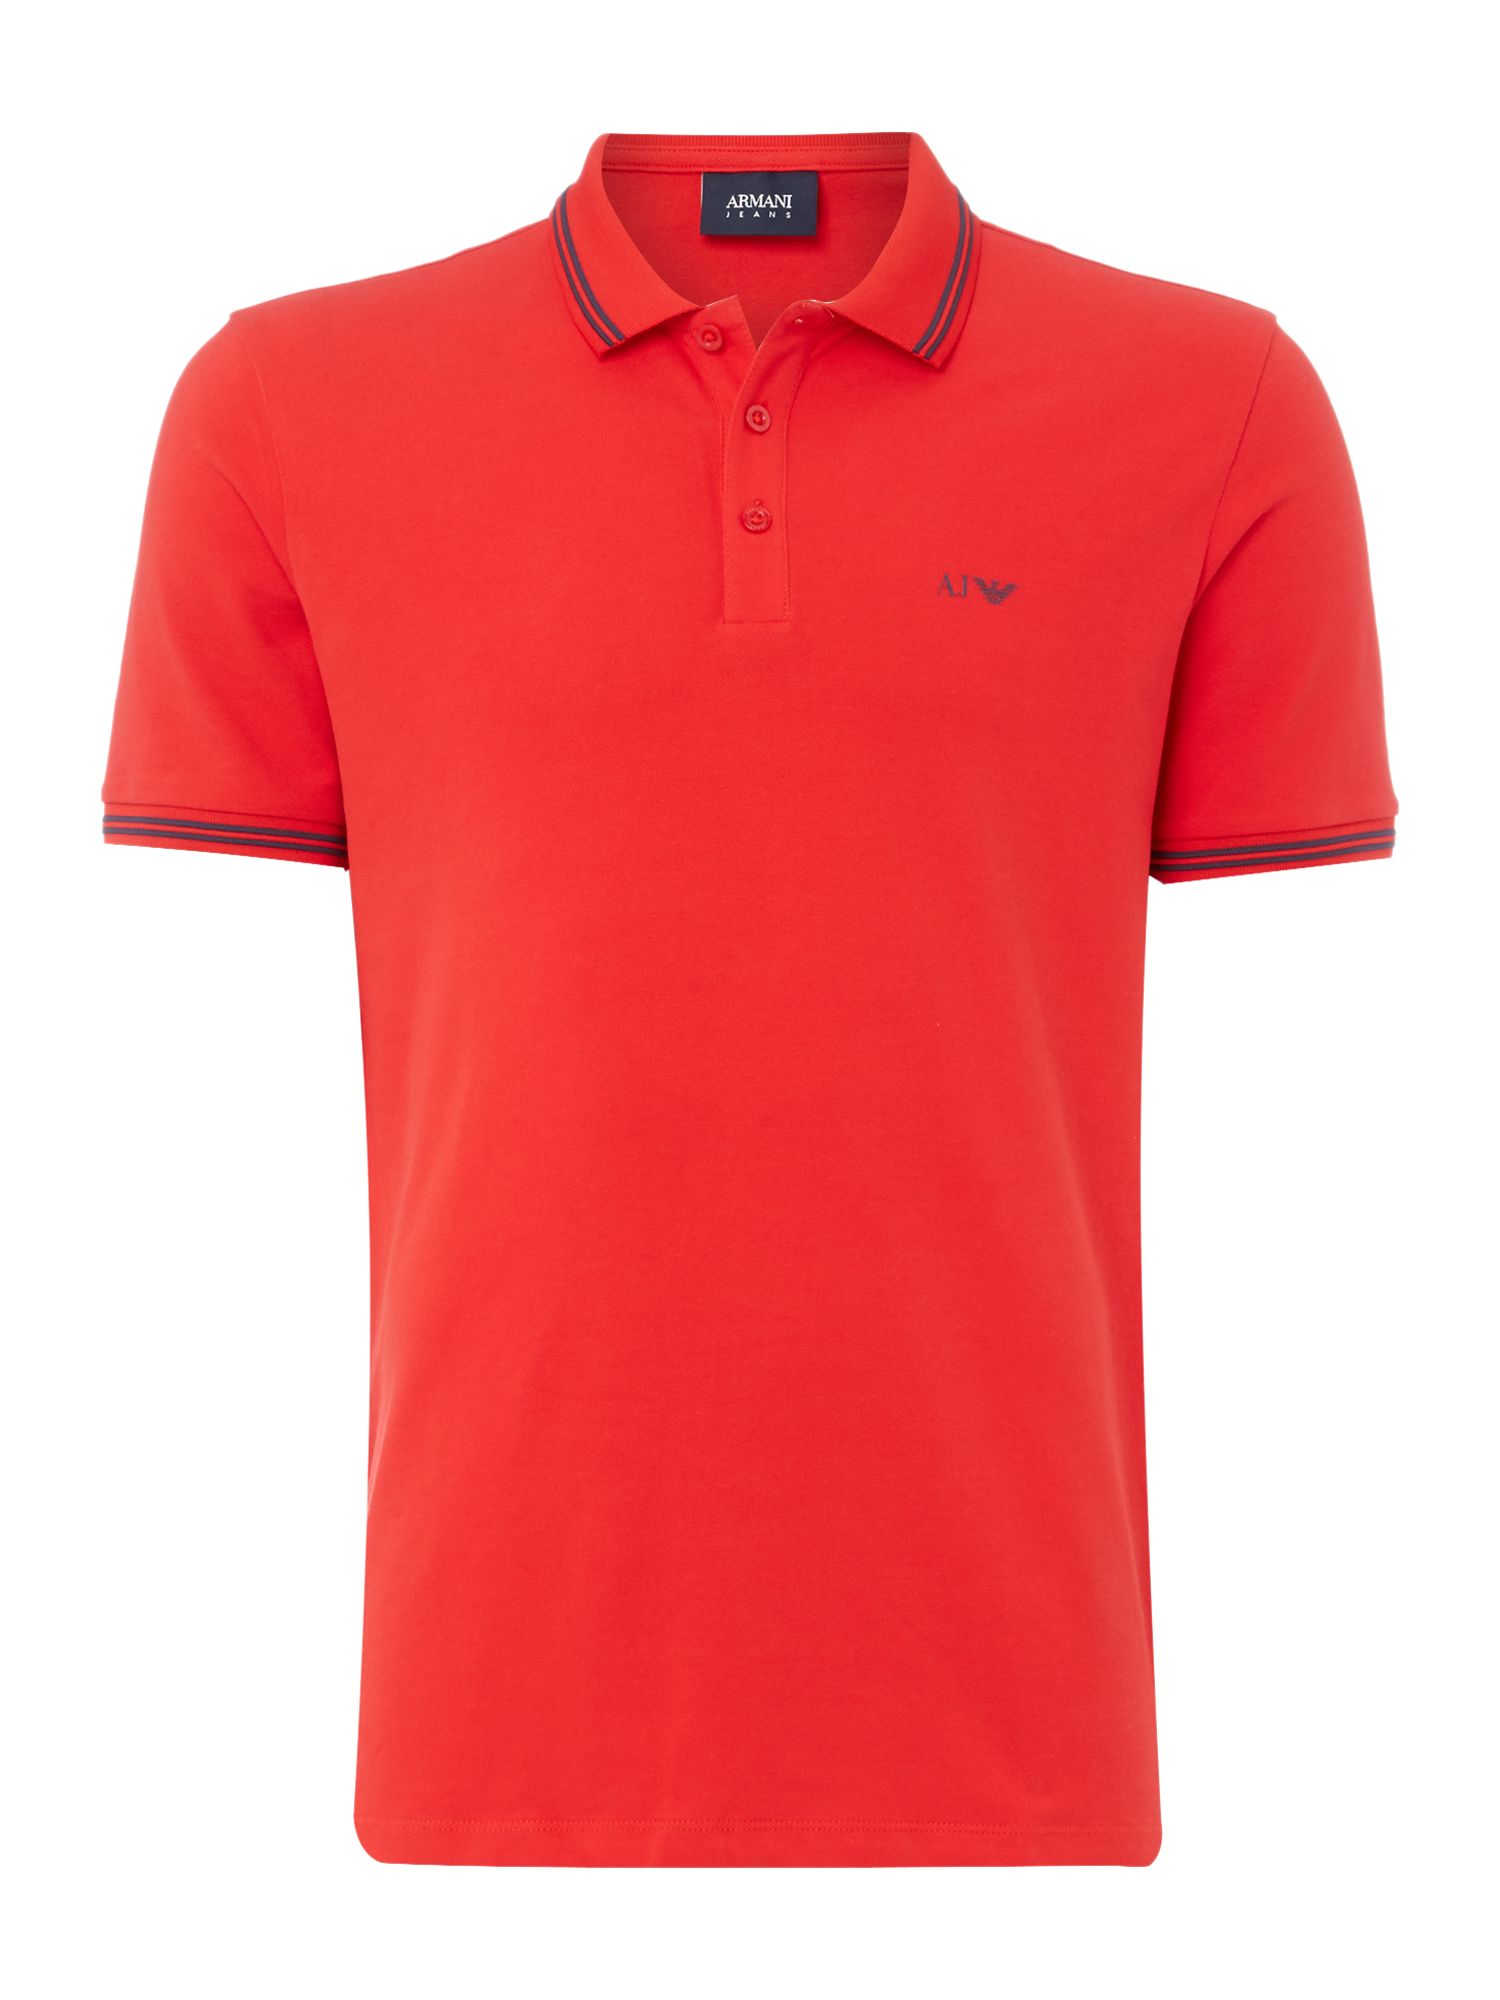 Men's Armani Jeans Regular fit tipped logo polo, Red